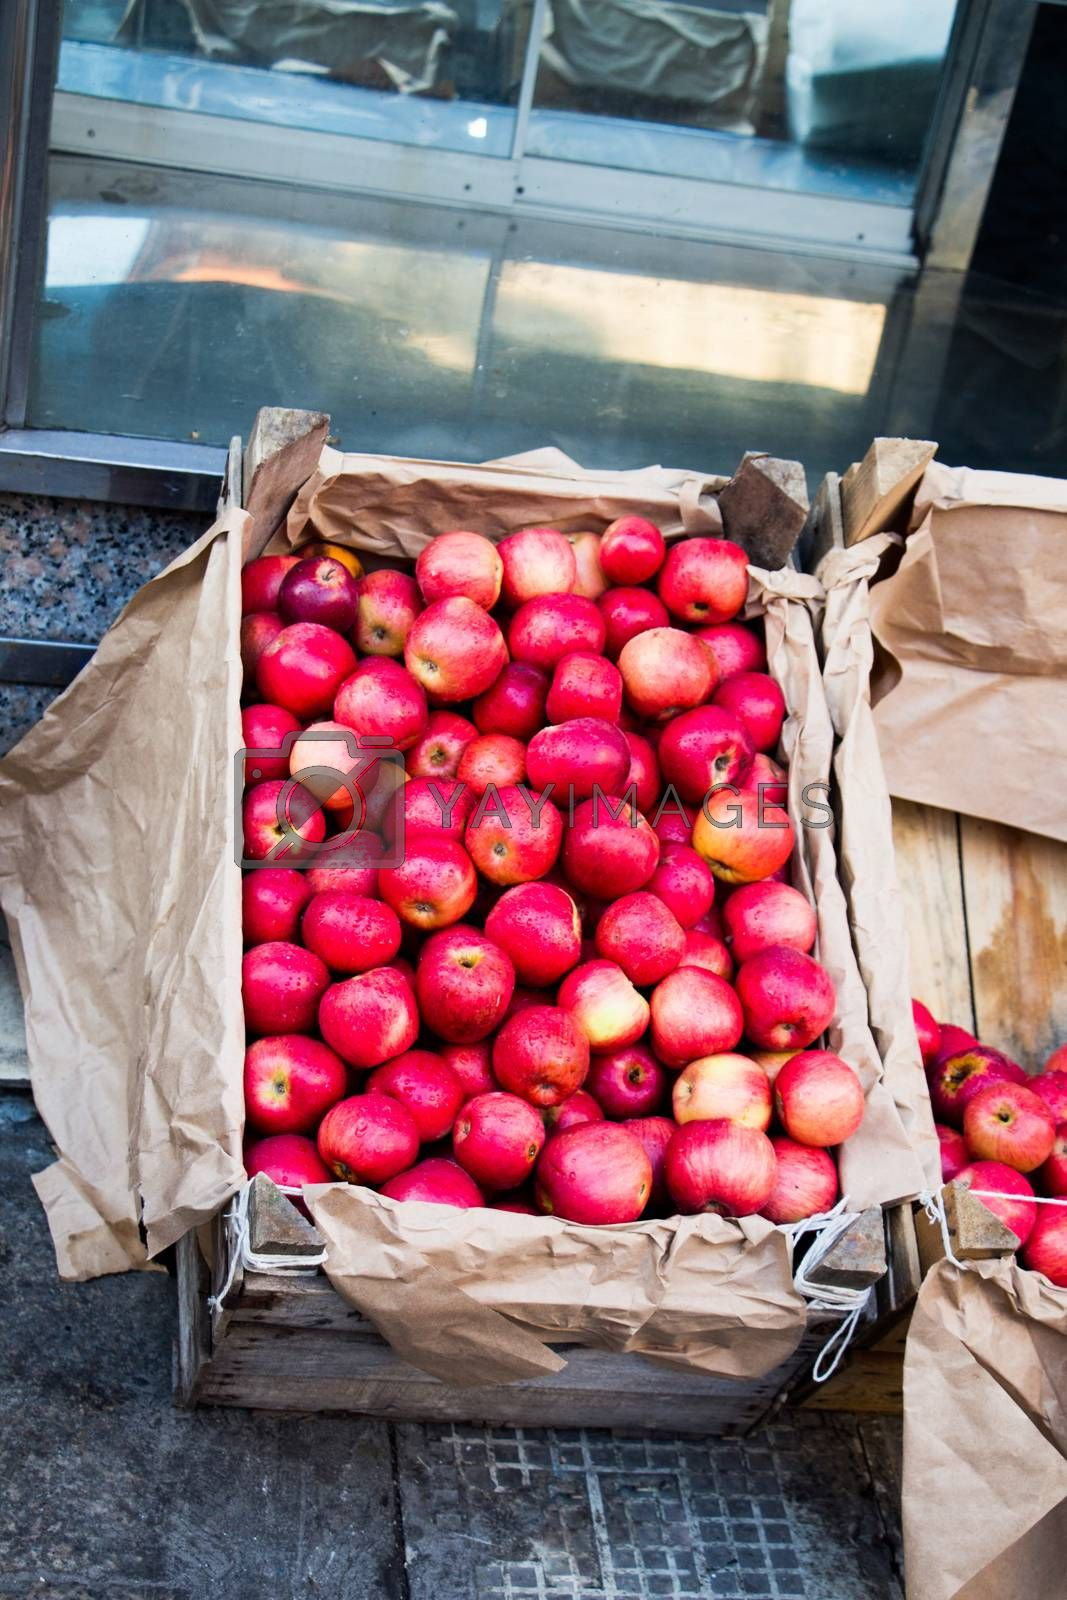 Red apples in box crate baskets